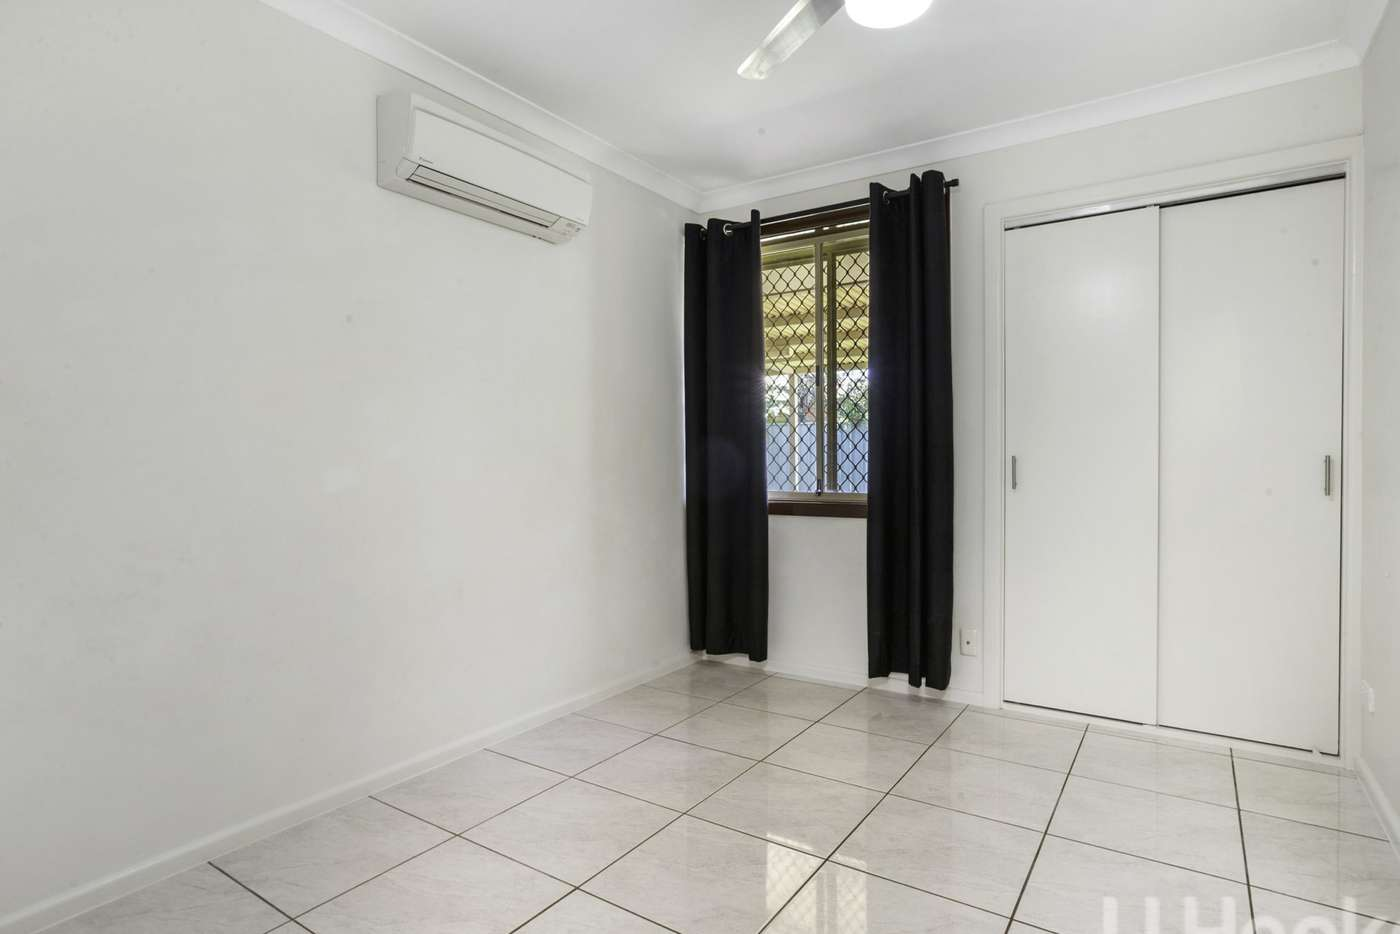 Sixth view of Homely house listing, 9A Porter Court, Millars Well WA 6714